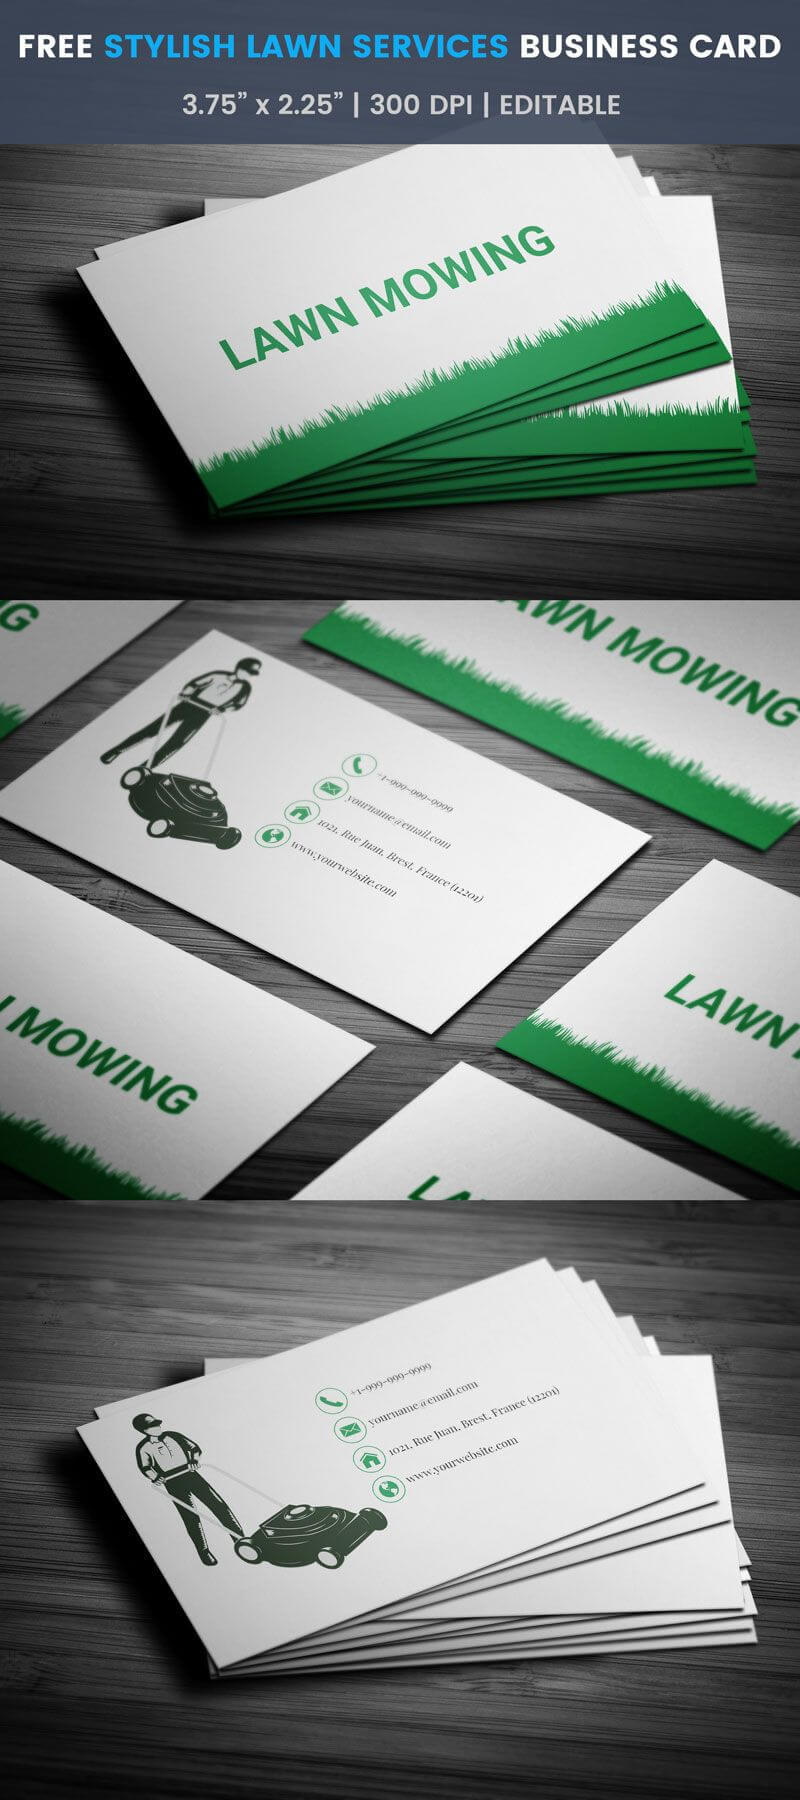 Brilliant Lawn Mowing Business Card- Full Preview | Free pertaining to Lawn Care Business Cards Templates Free